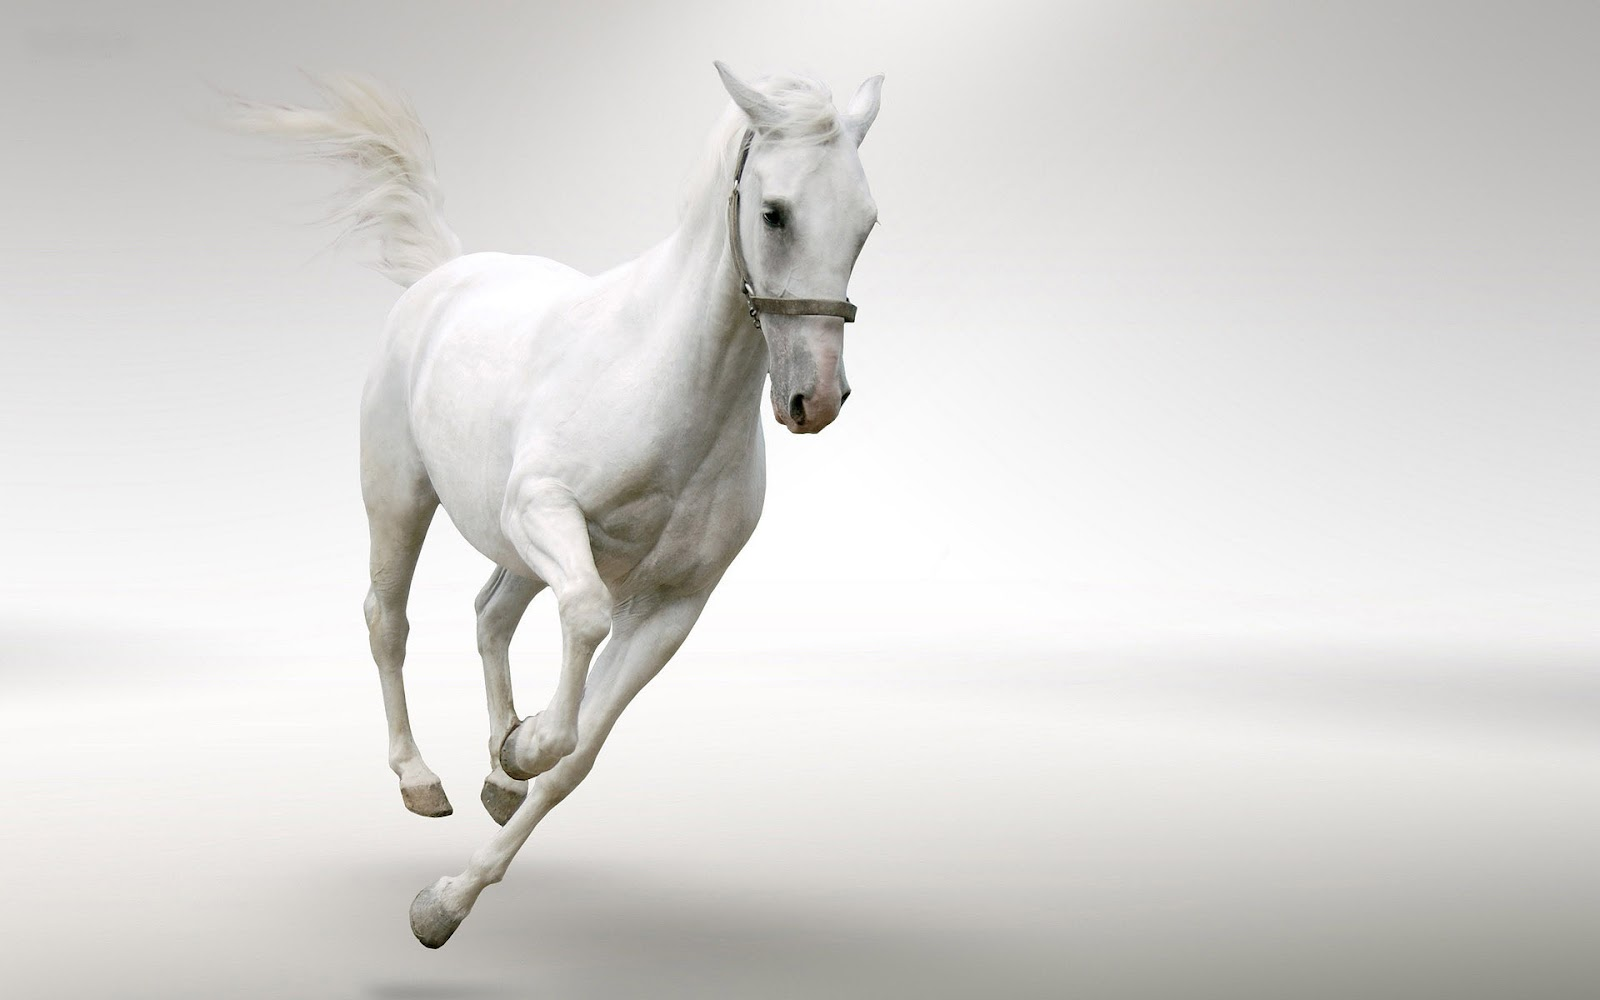 White Images Stunning White Horse Hd Wallpaper And Background Photos